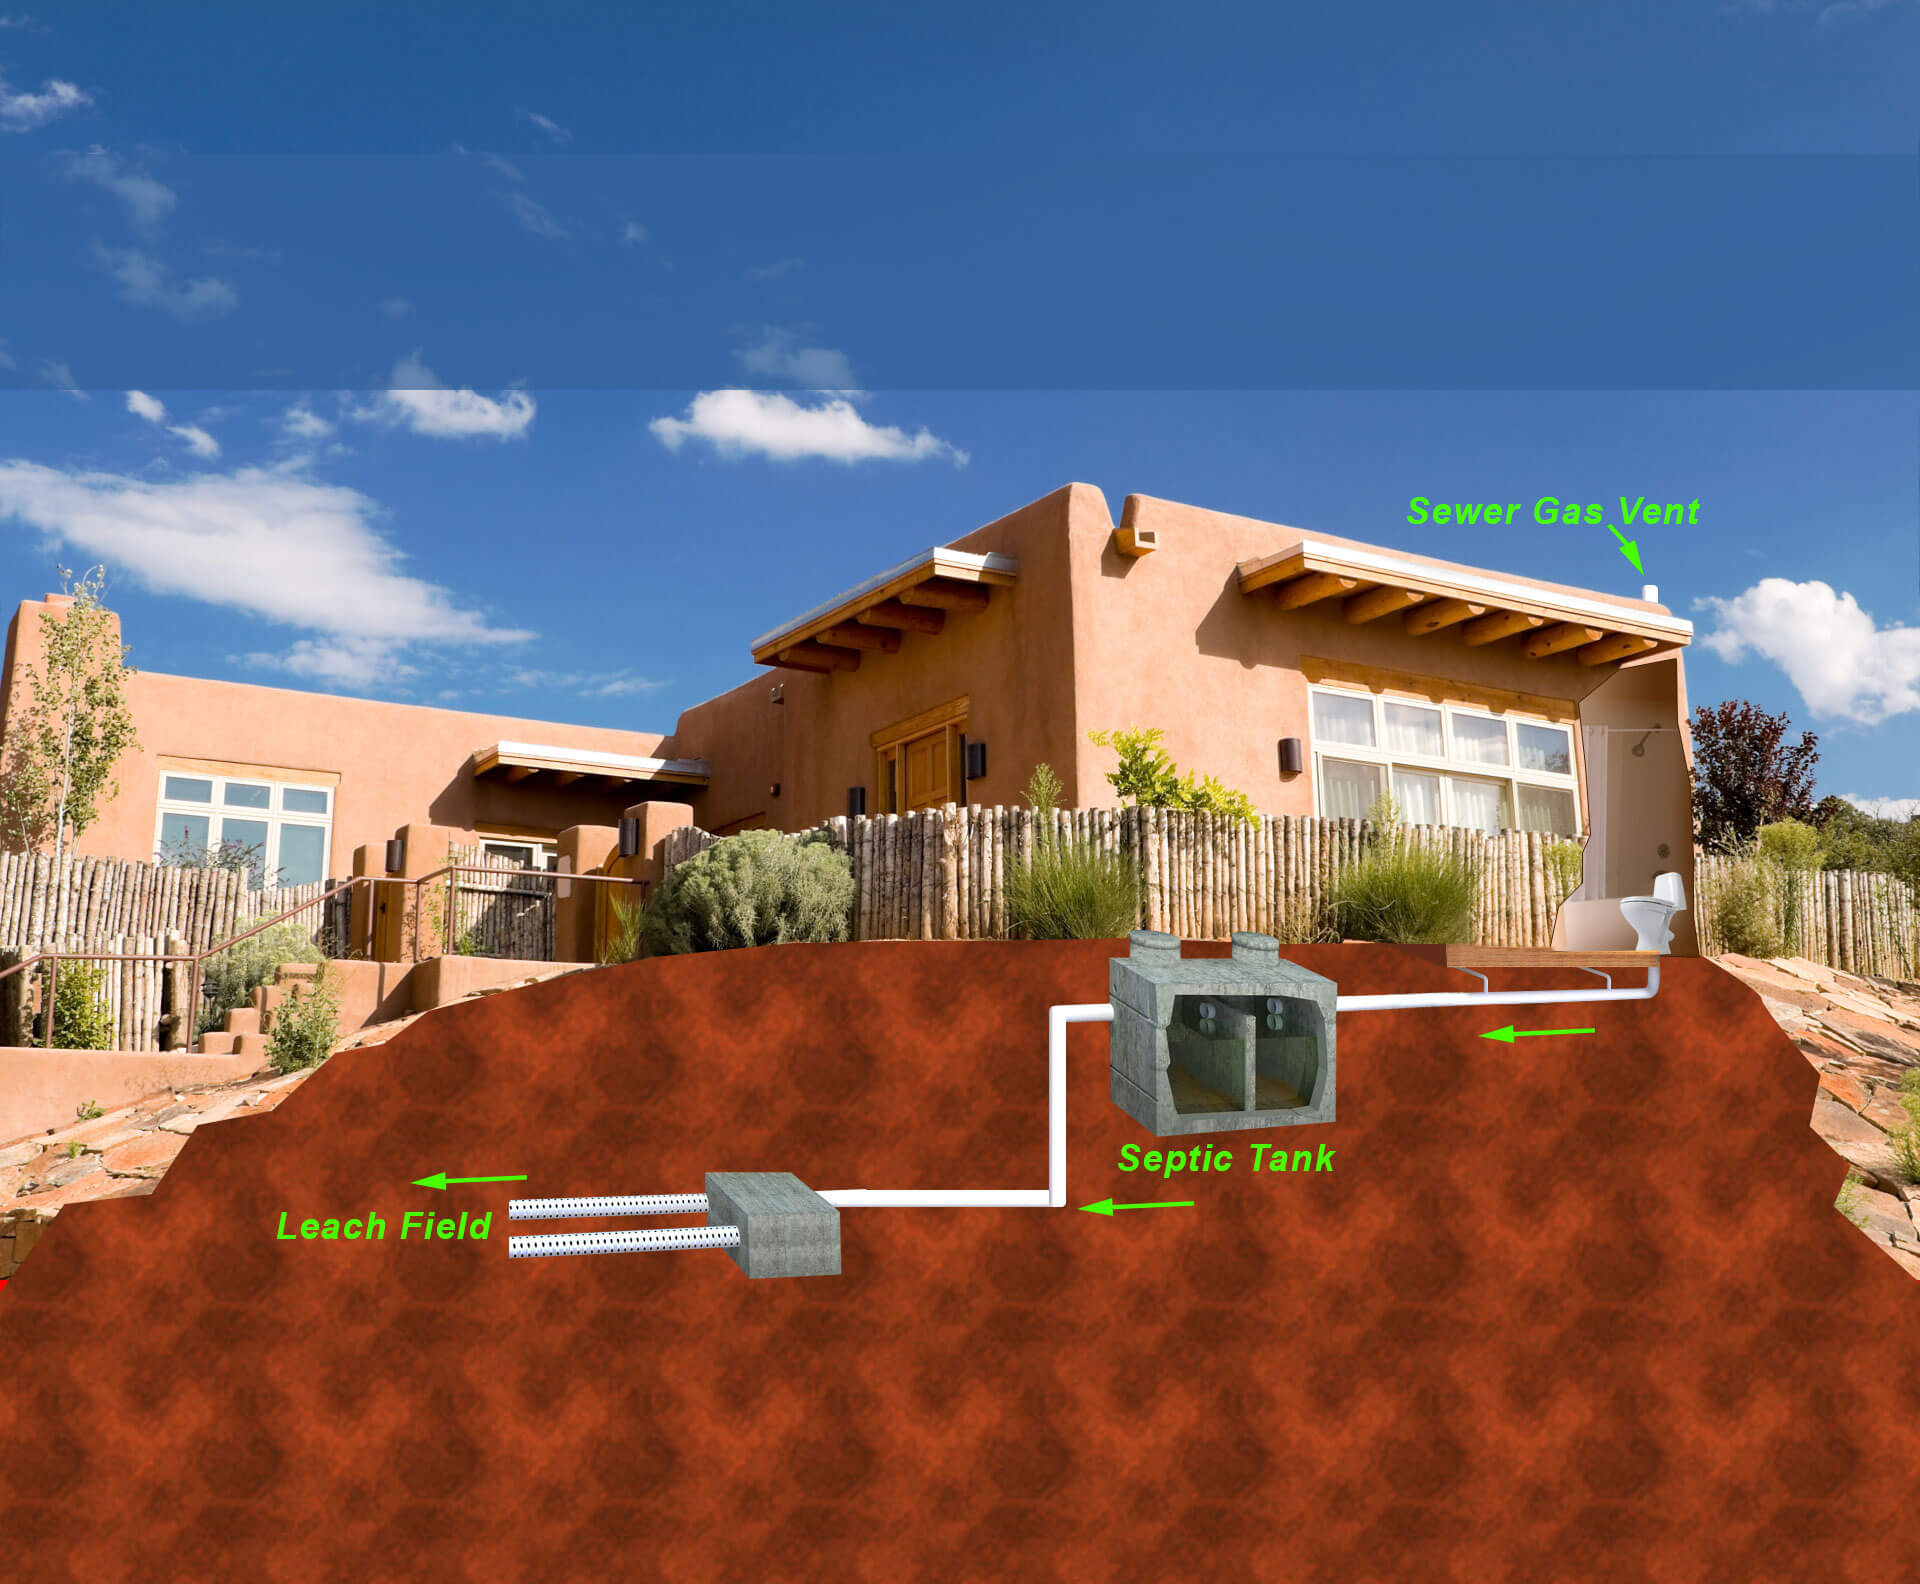 Home Septic System-Houston TX Septic Tank Pumping, Installation, & Repairs-We offer Septic Service & Repairs, Septic Tank Installations, Septic Tank Cleaning, Commercial, Septic System, Drain Cleaning, Line Snaking, Portable Toilet, Grease Trap Pumping & Cleaning, Septic Tank Pumping, Sewage Pump, Sewer Line Repair, Septic Tank Replacement, Septic Maintenance, Sewer Line Replacement, Porta Potty Rentals, and more.